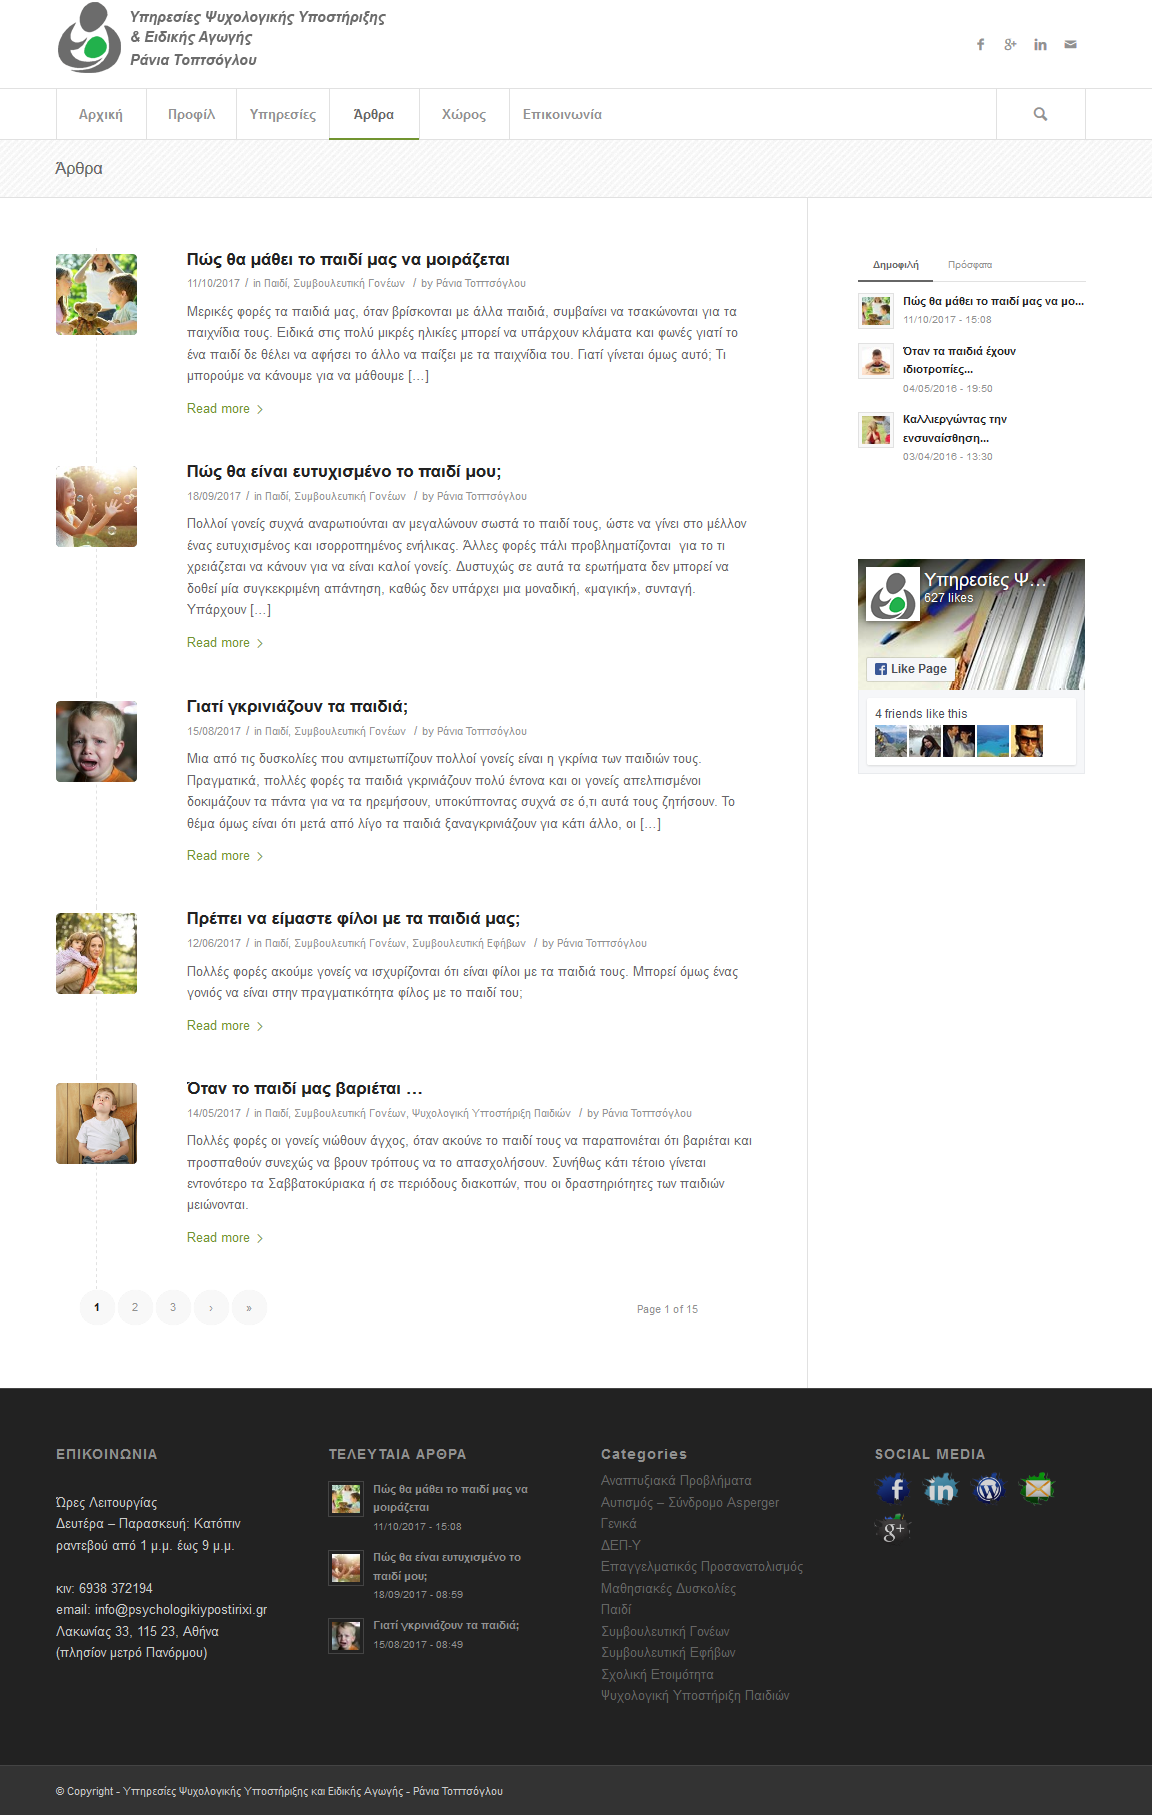 Project: Rania Toptsoglou Blog - Innovative Frog - Web Design & Web Apps